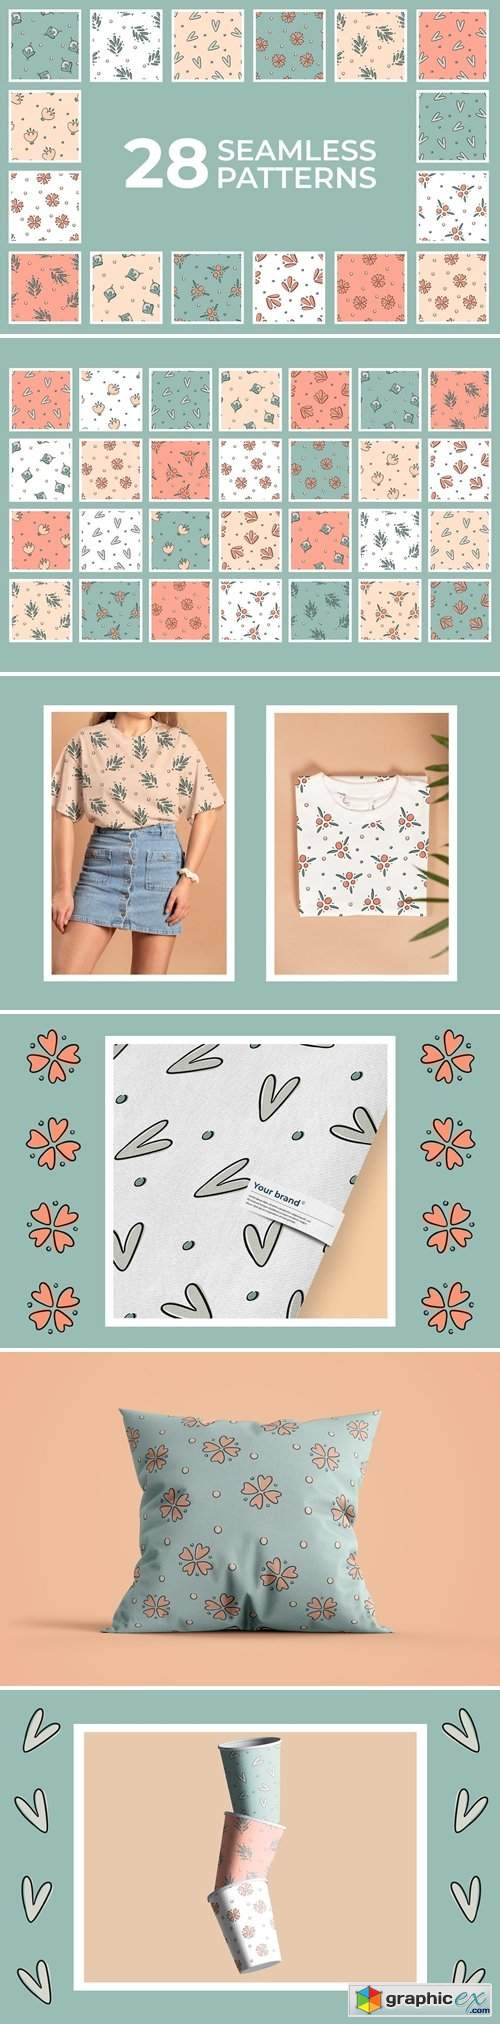 Floral abstract seamless patterns